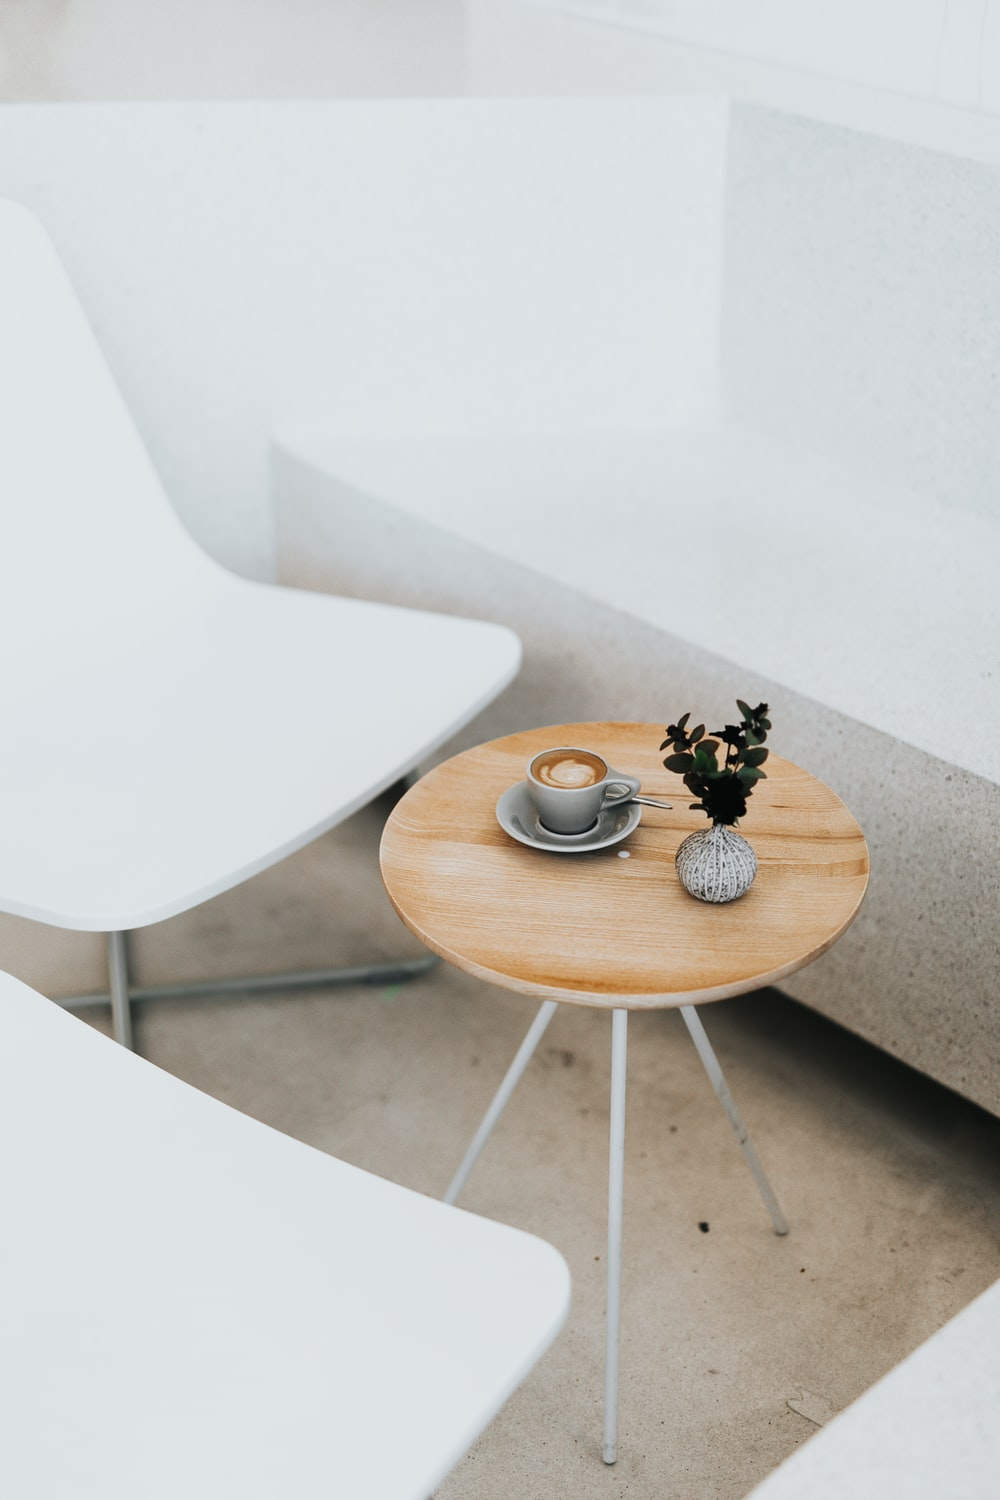 round brown table beside two white chairs